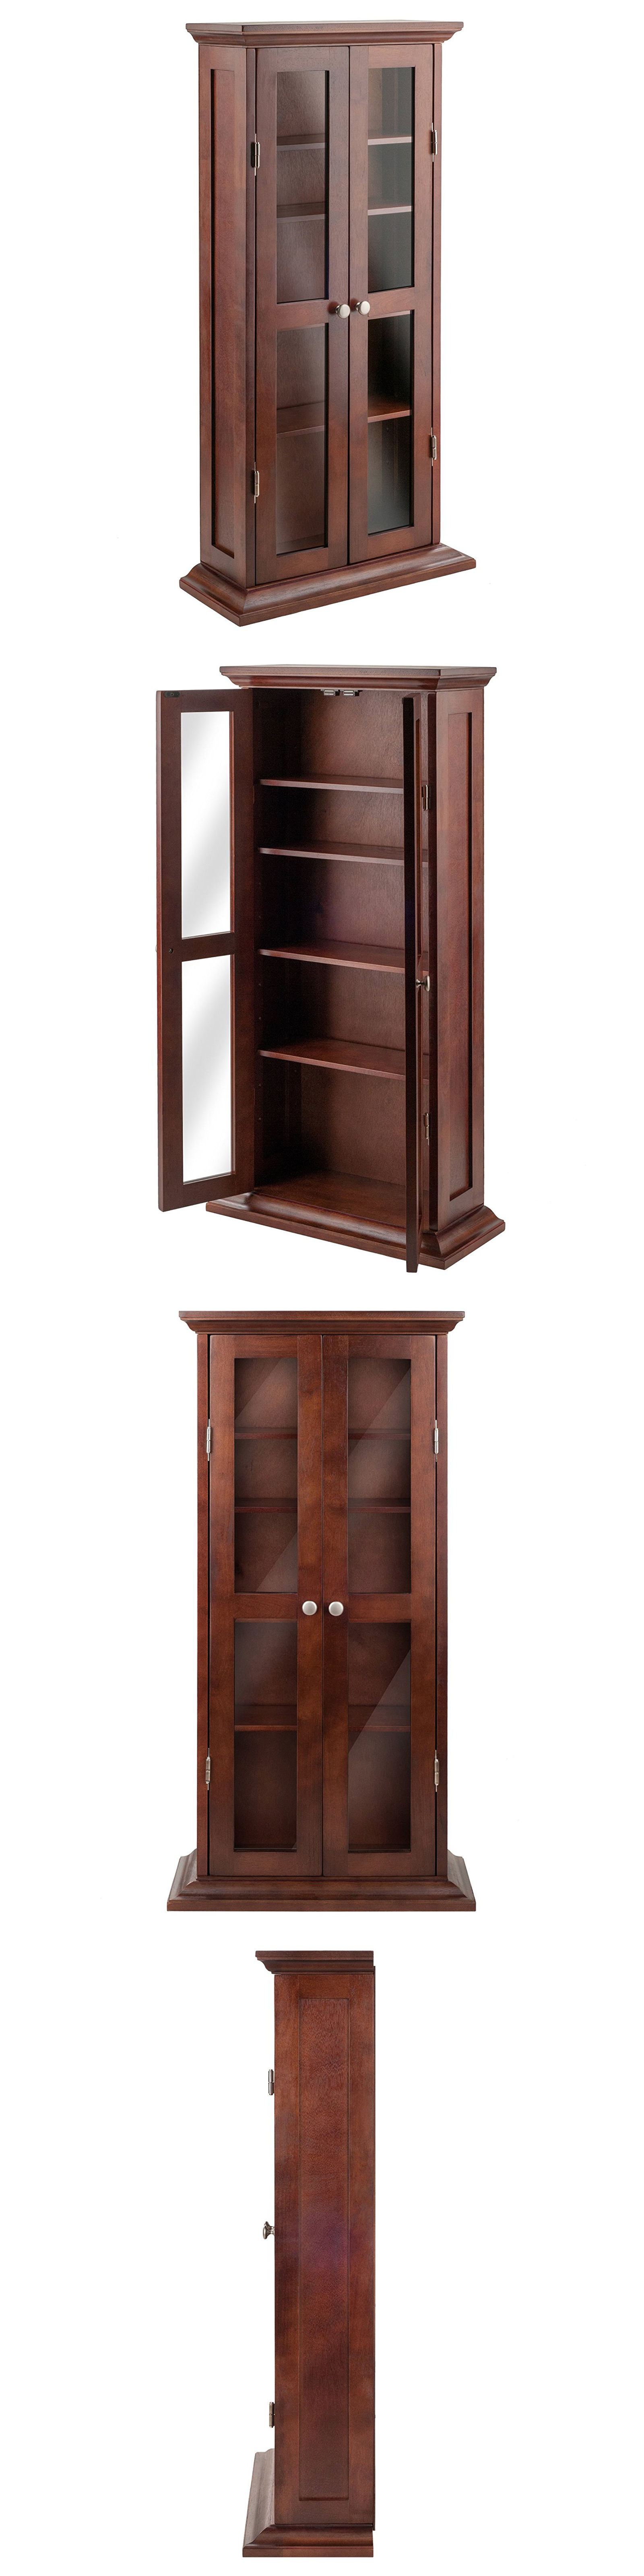 CD and Video Racks Media Storage Cabinet With Doors Wood